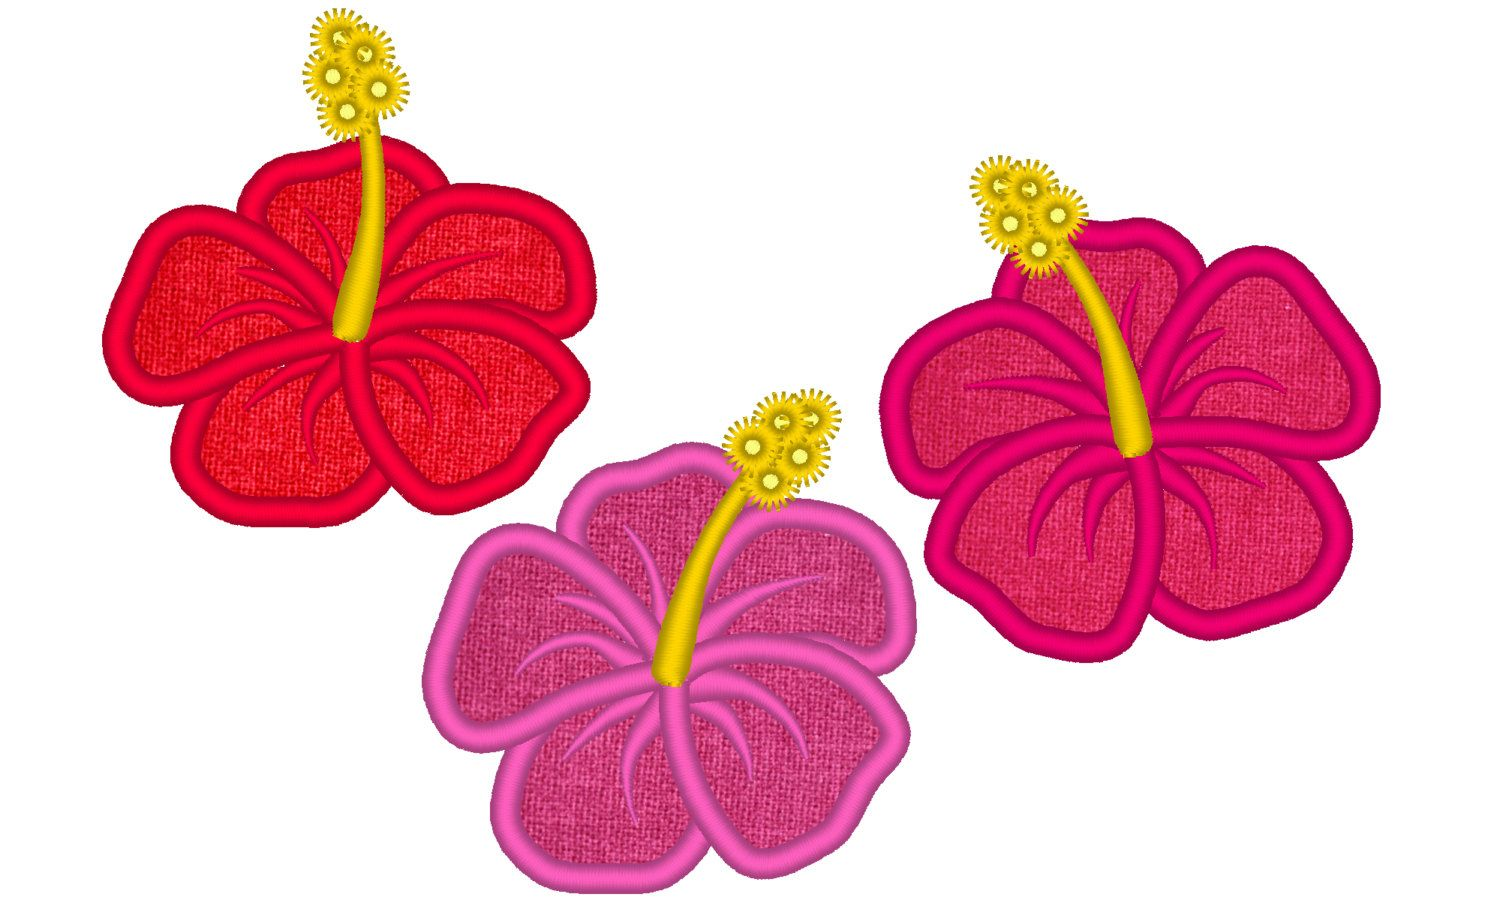 Hibiscus flowers set 3 types hawaii summer flower embroidery